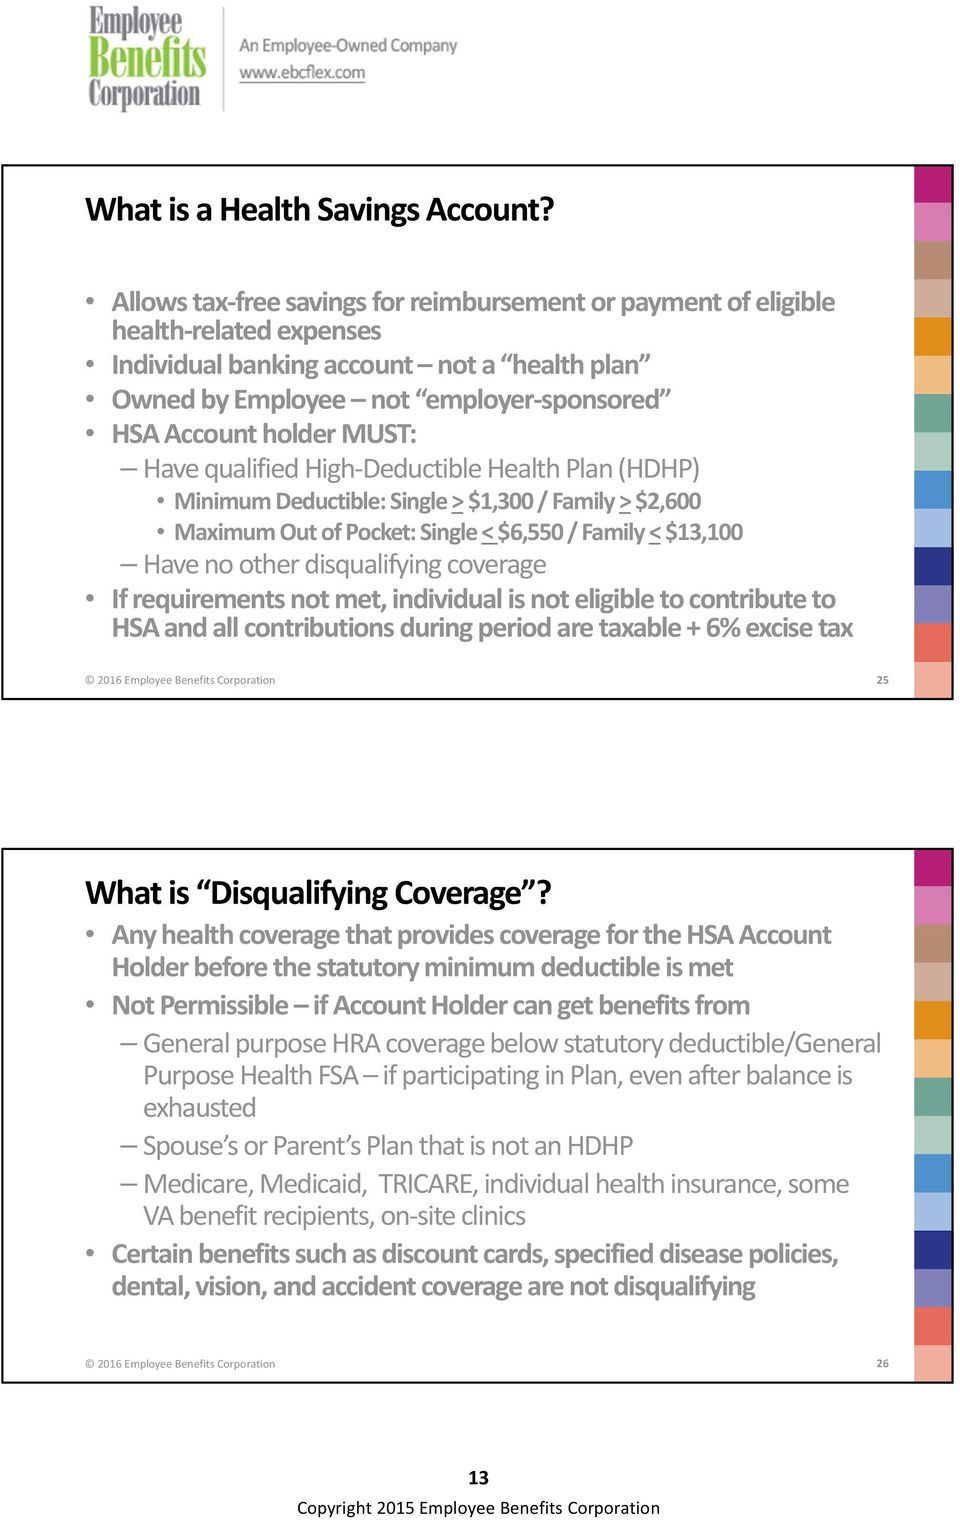 Have qualified High Deductible Health Plan (HDHP) Minimum Deductible: Single > $1,300 / Family > $2,600 Maximum Out of Pocket: Single < $6,550 / Family < $13,100 Have no other disqualifying coverage